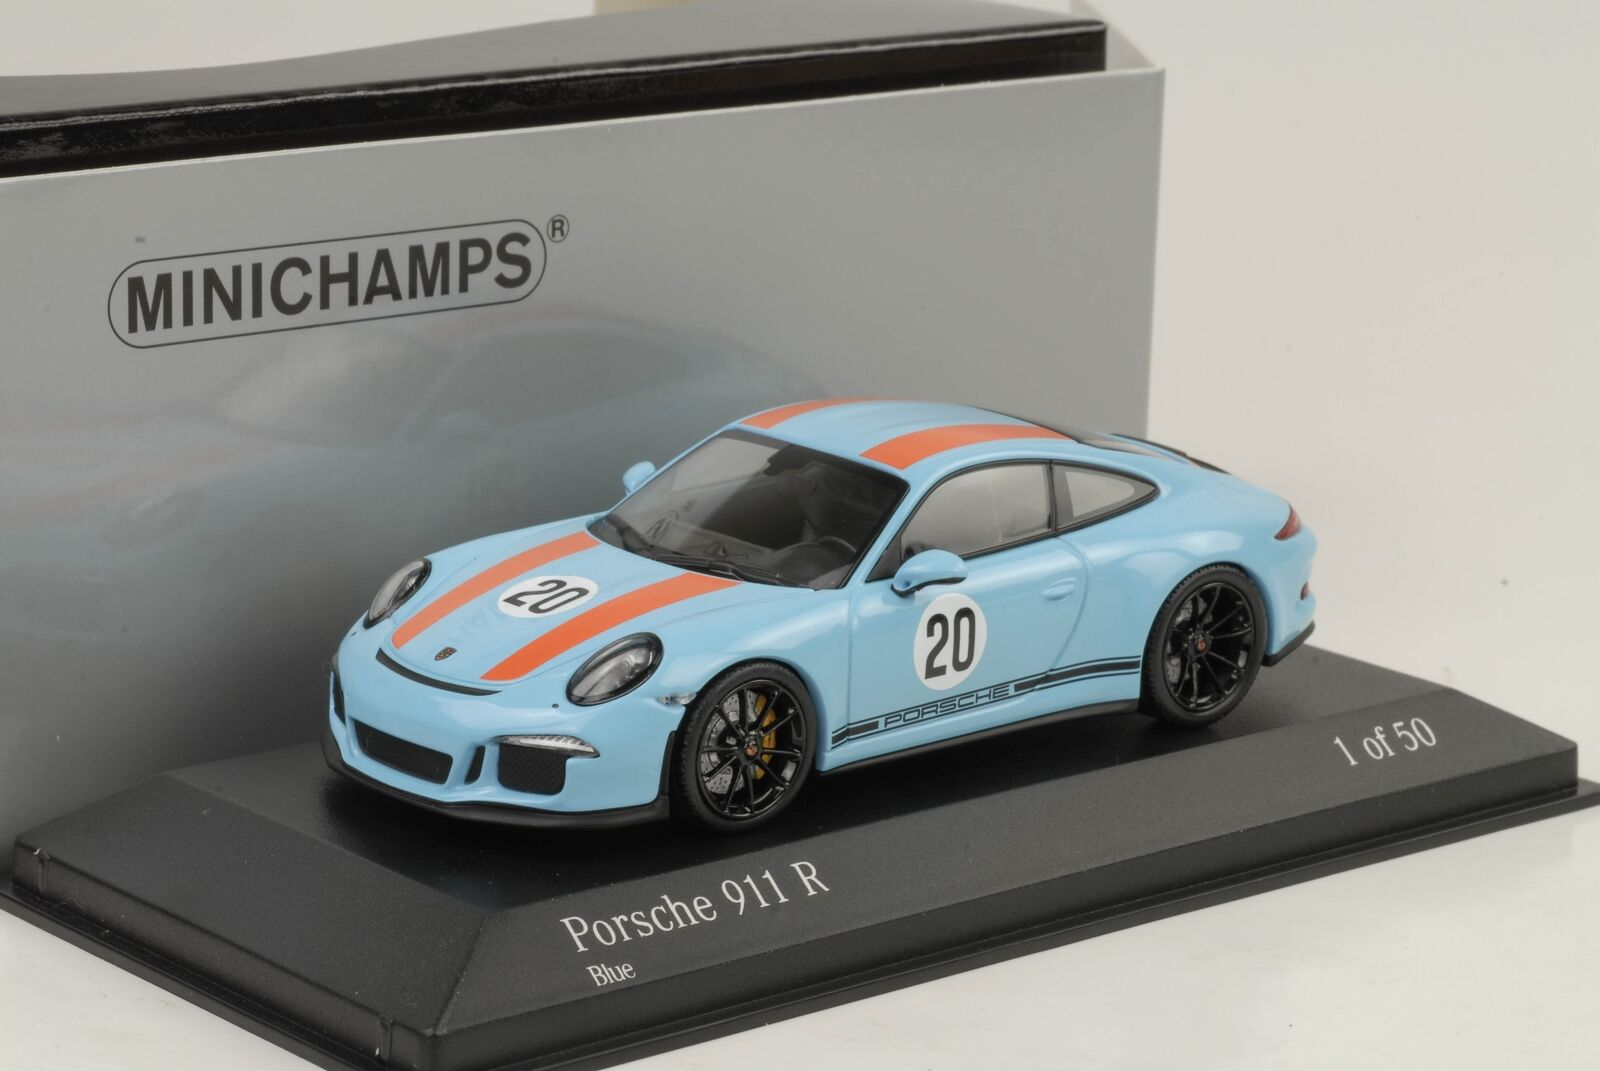 2016 Porsche 911r 911 R Gulf bluee orange le Mans 1 43 Minichamps